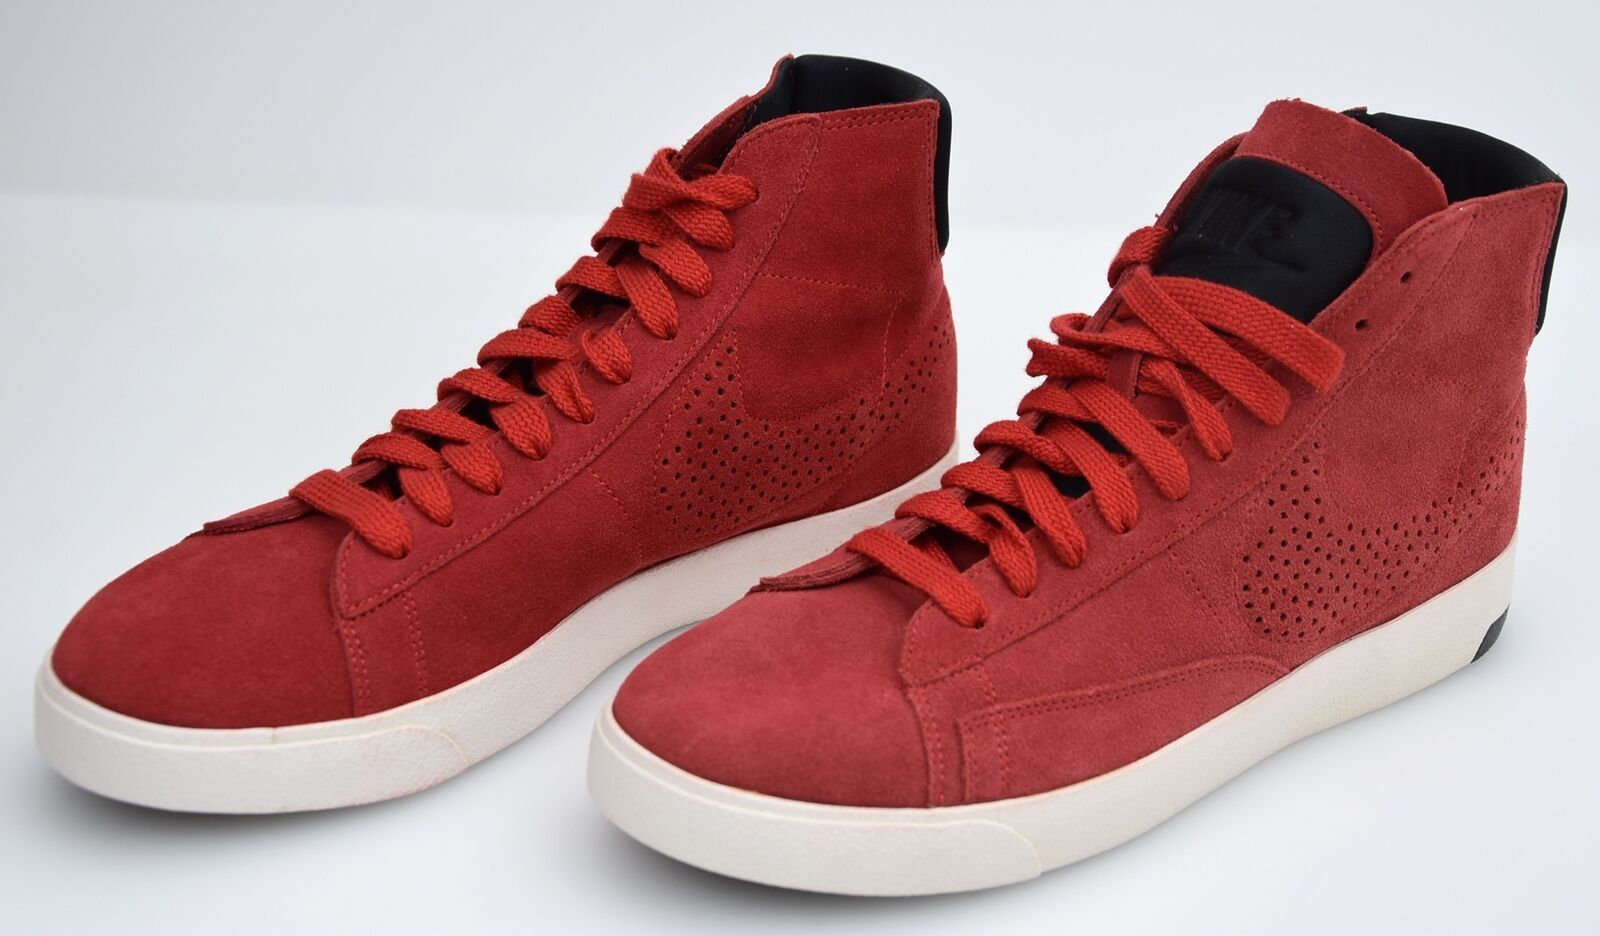 NIKE MAN SNEAKER SHOES CASUAL FREE TIME SUEDE CODE 599464 600 BLAZER LUX DEFECT